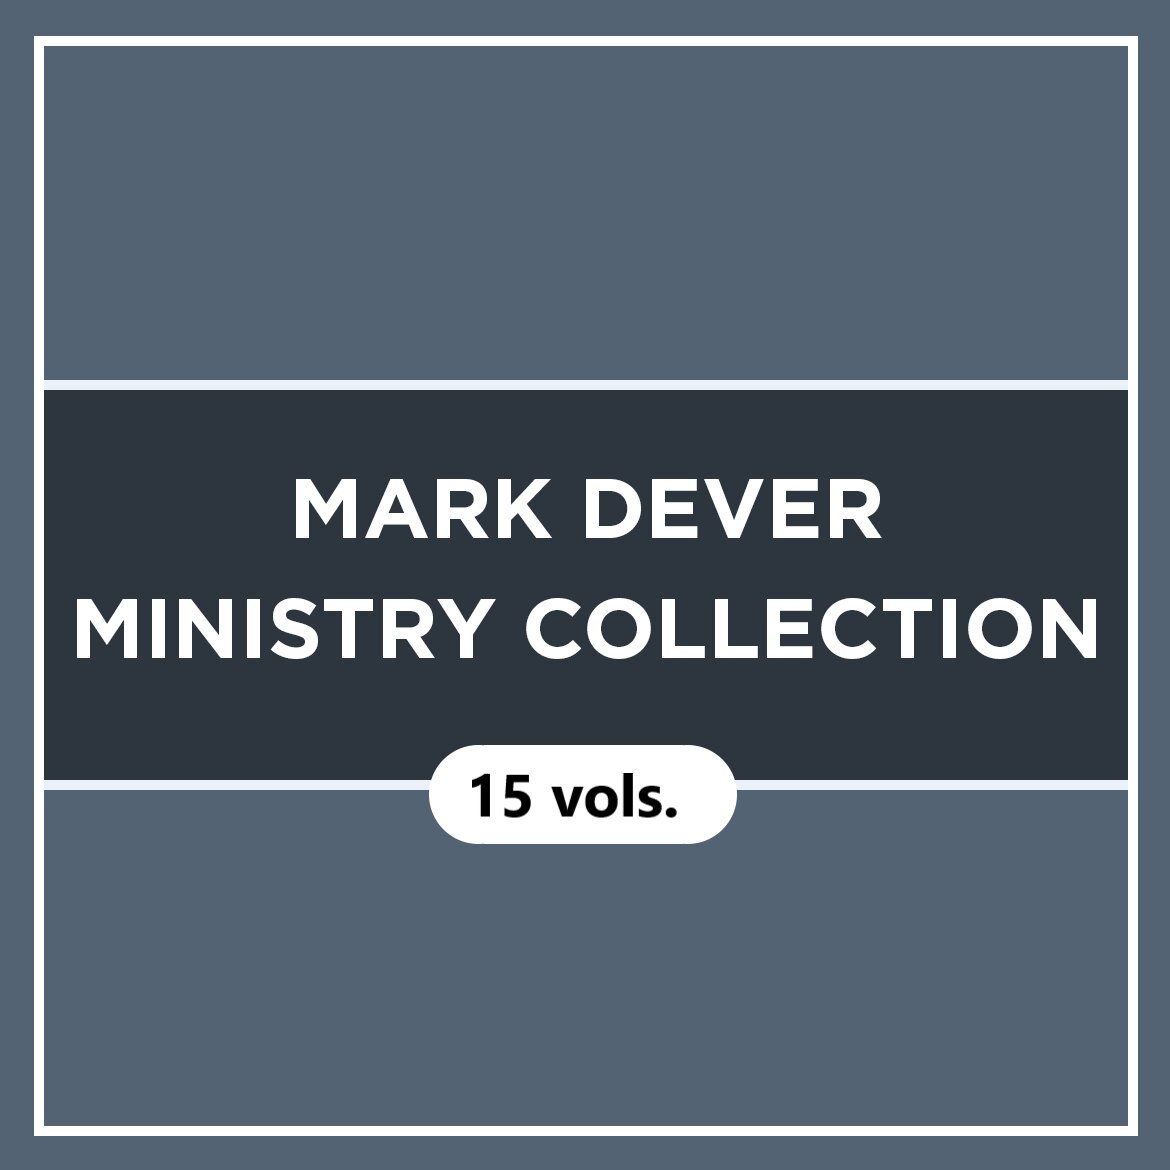 Mark Dever Ministry Collection (15 vols.)